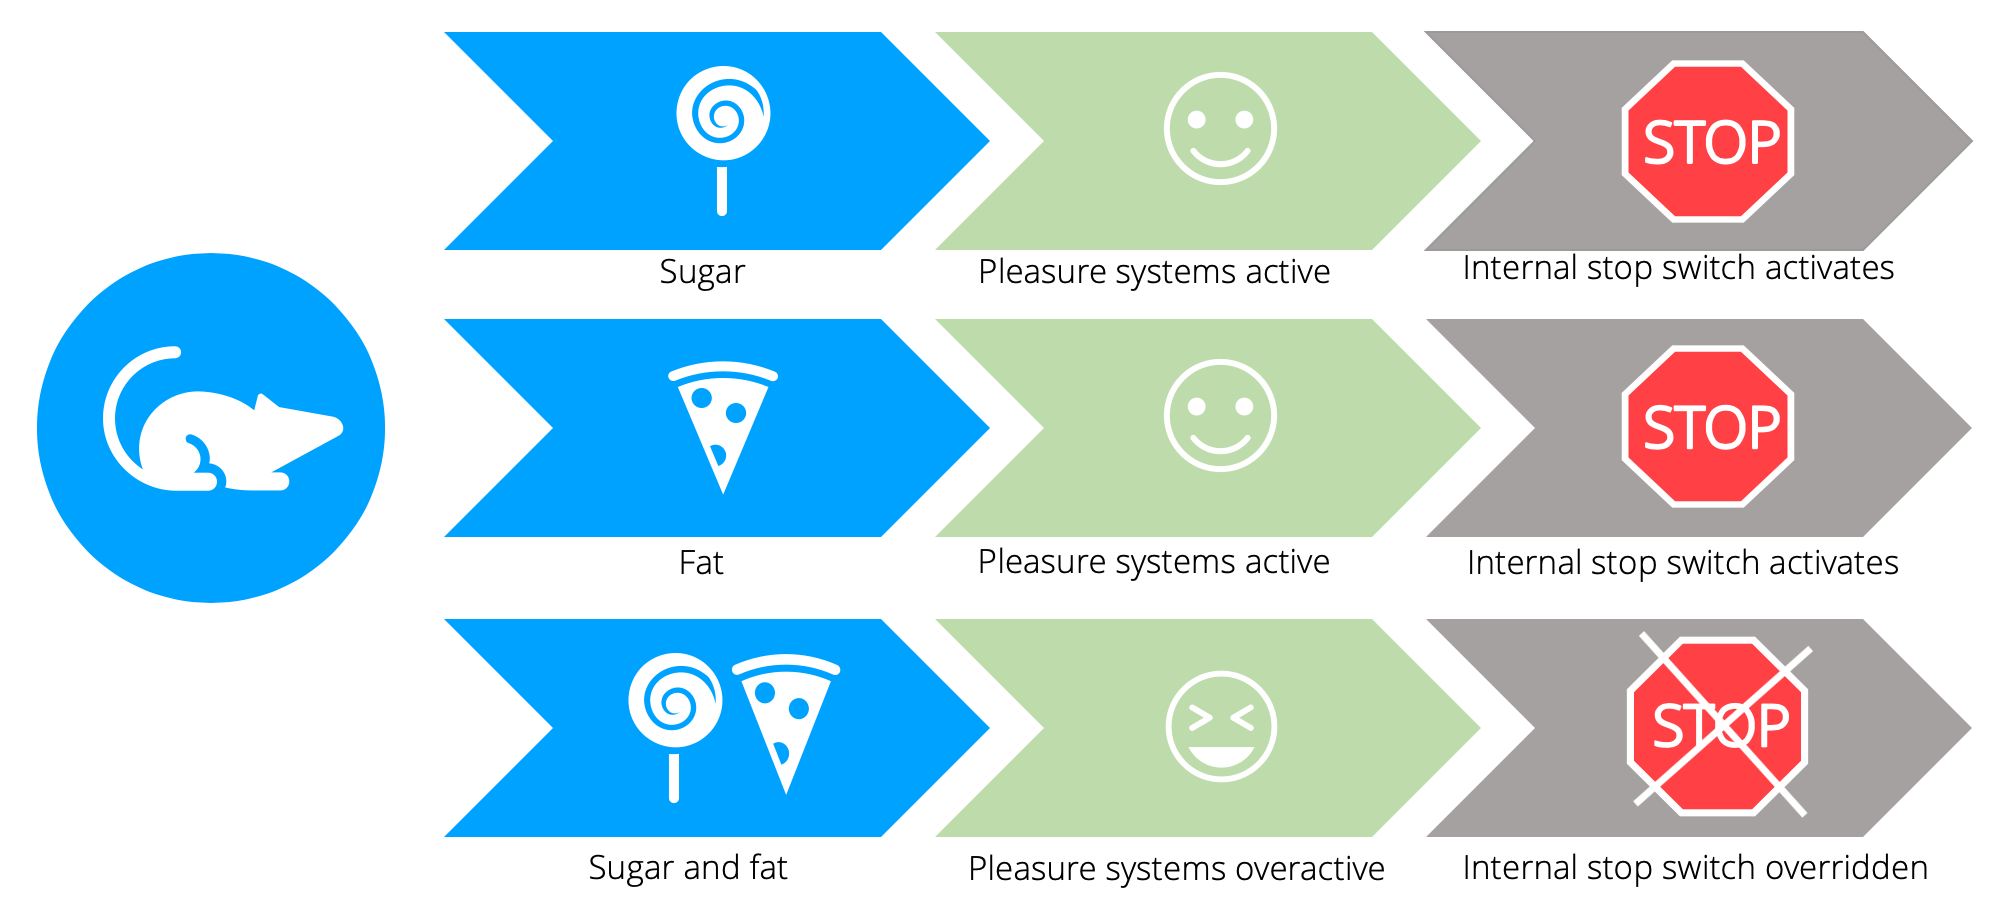 Diagram illustrating the effects of eating sugar and fat alone vs. sugar and fat combined.